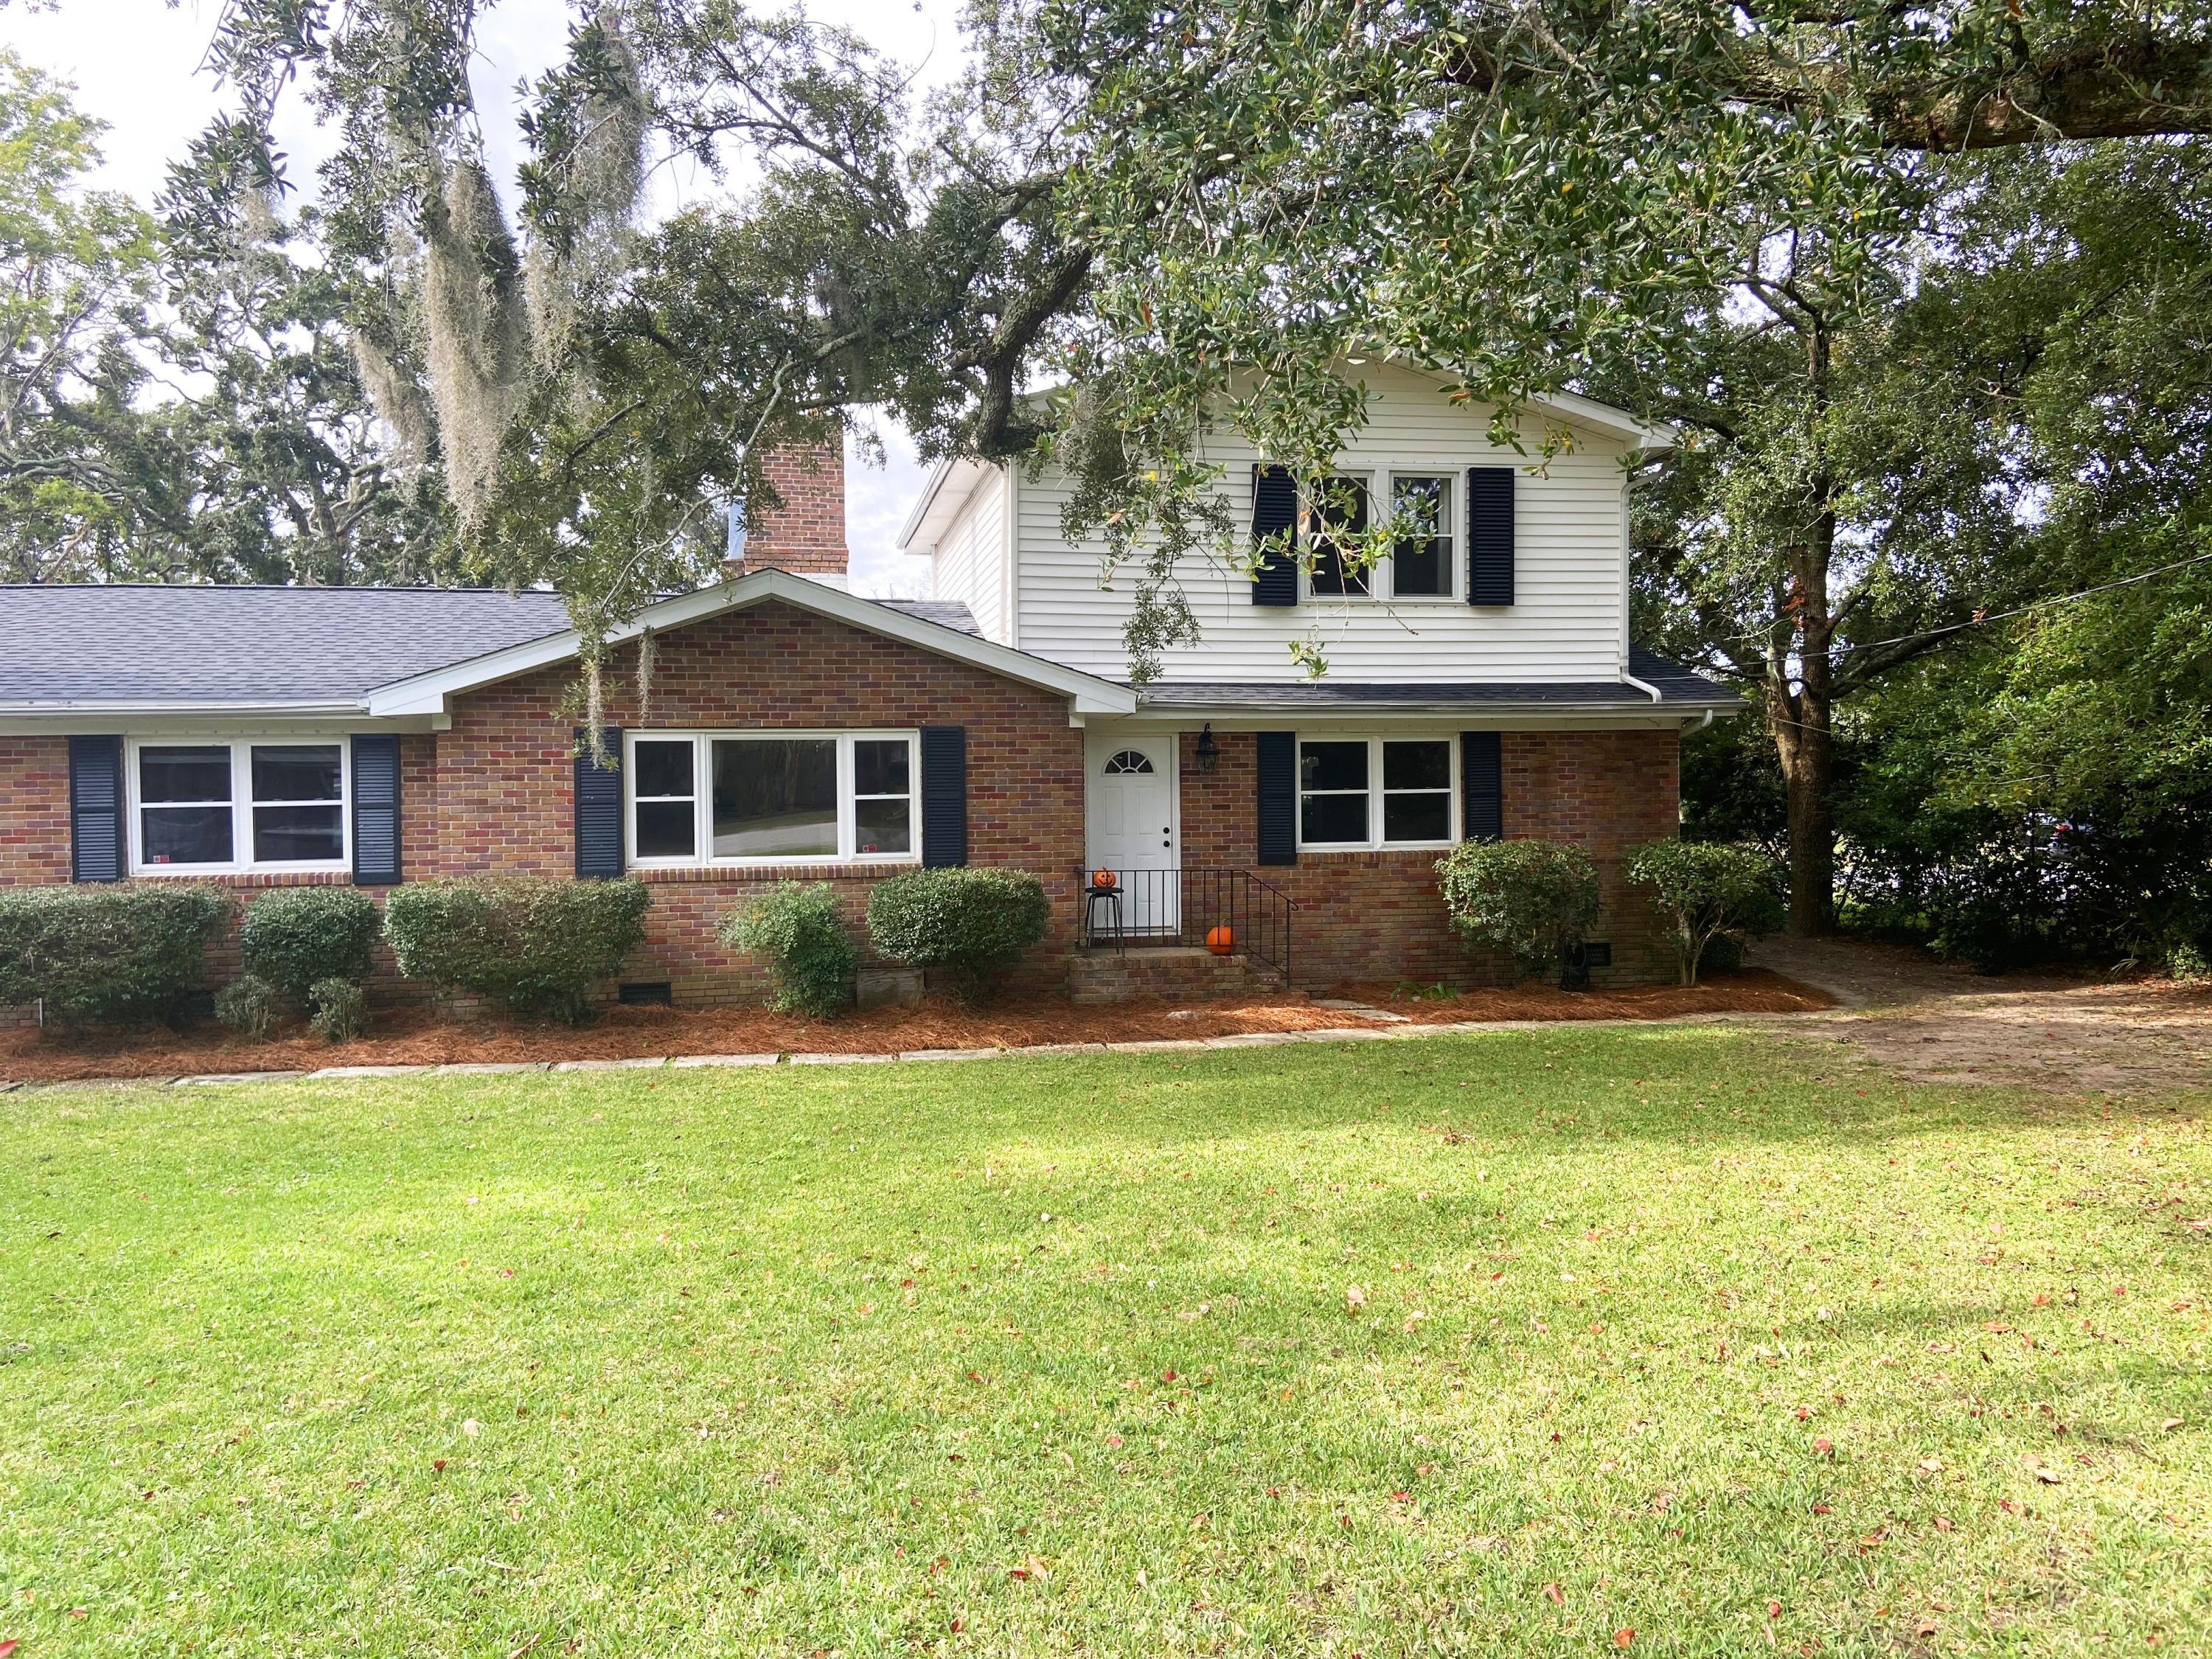 Bay View Acres Homes For Sale - 239 Bayview, Mount Pleasant, SC - 3